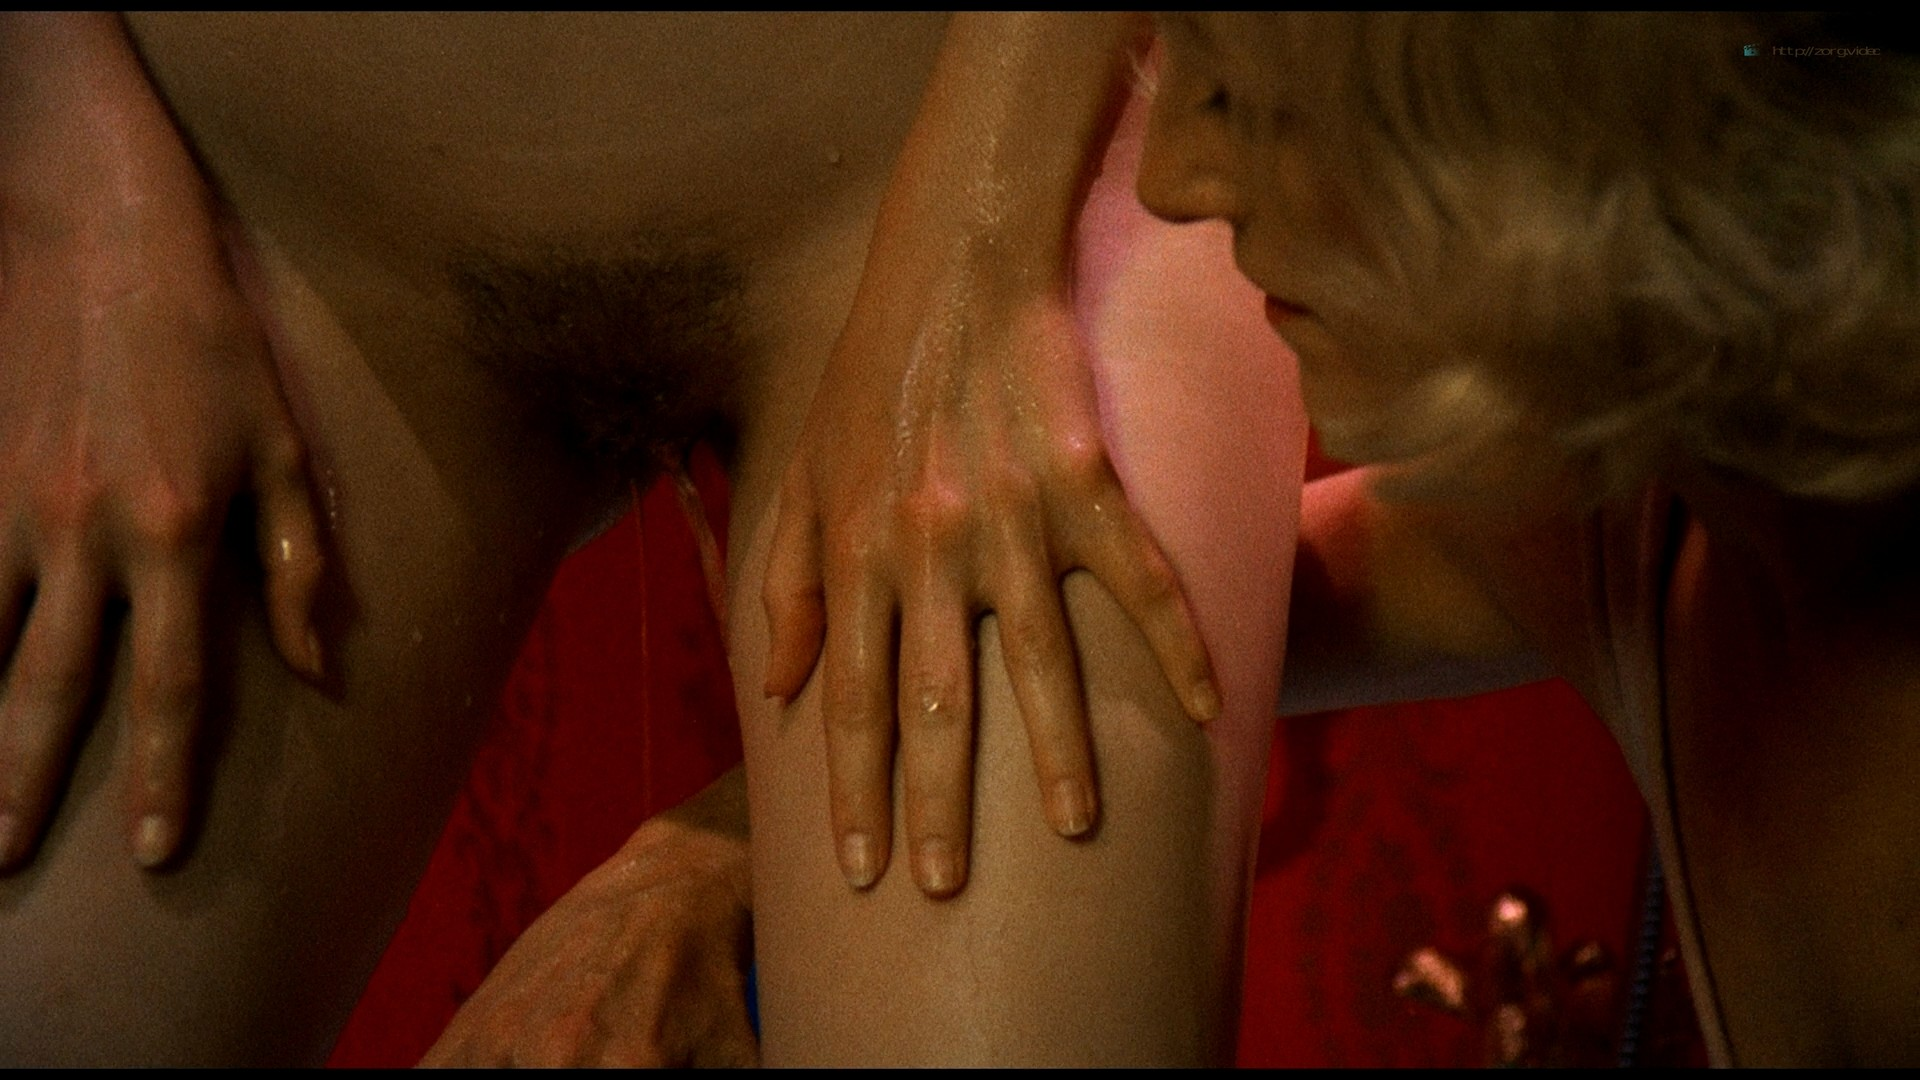 Rebecca Brooke nude explicit bj Yvette Hiver nude bj too - The Image (1975) HD 1080p BluRay (r) (6)